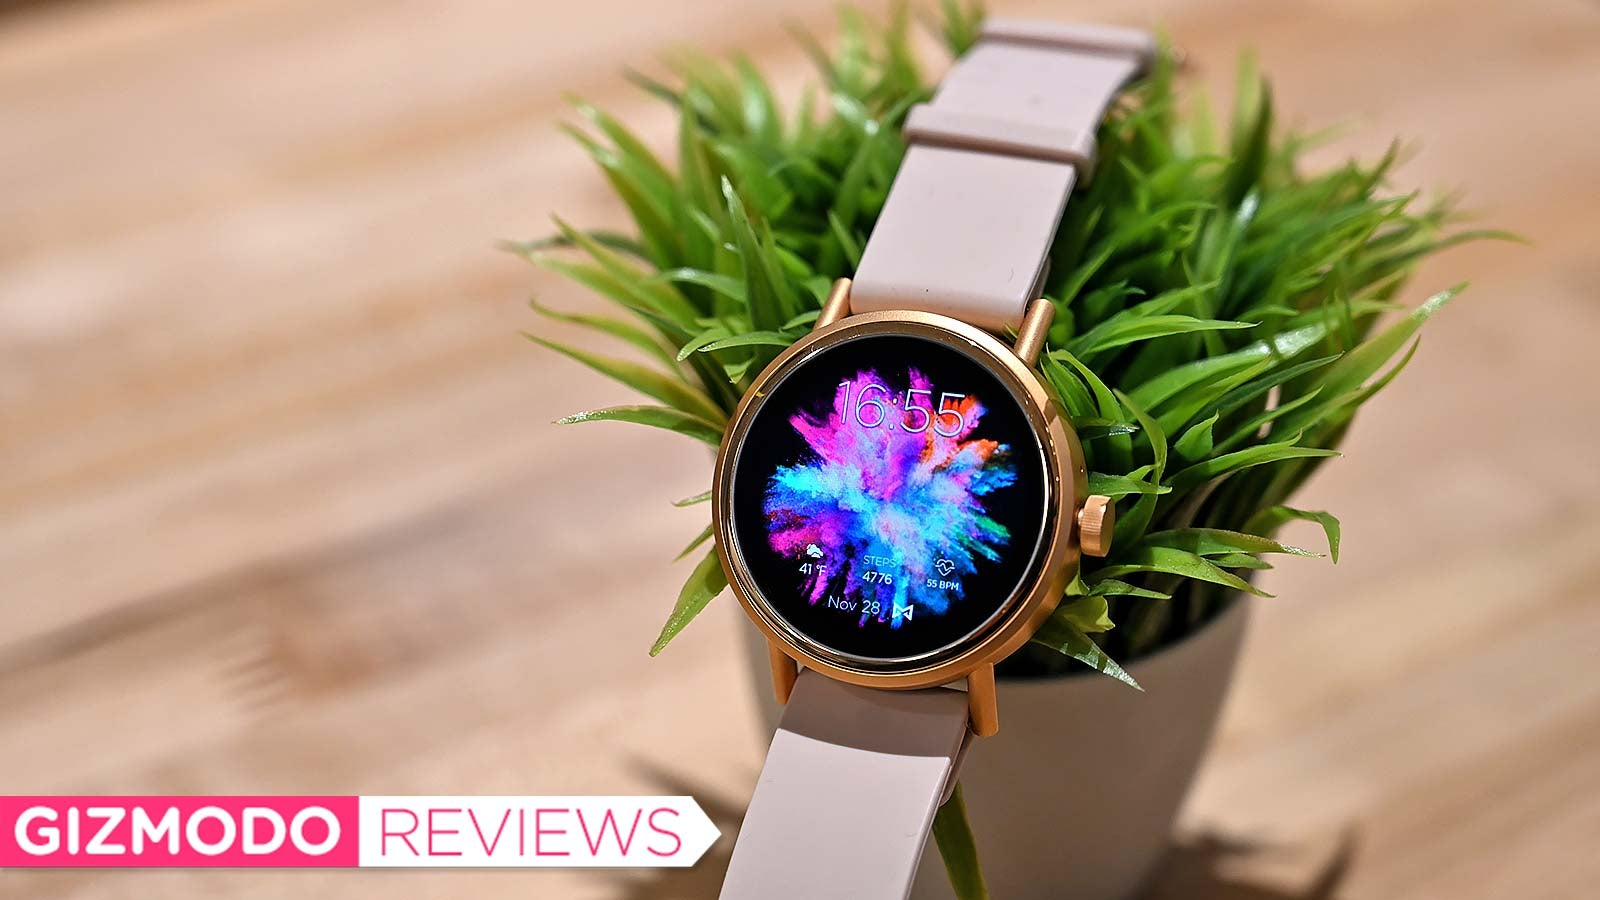 This Smartwatch Has Incredibly Bad Timing